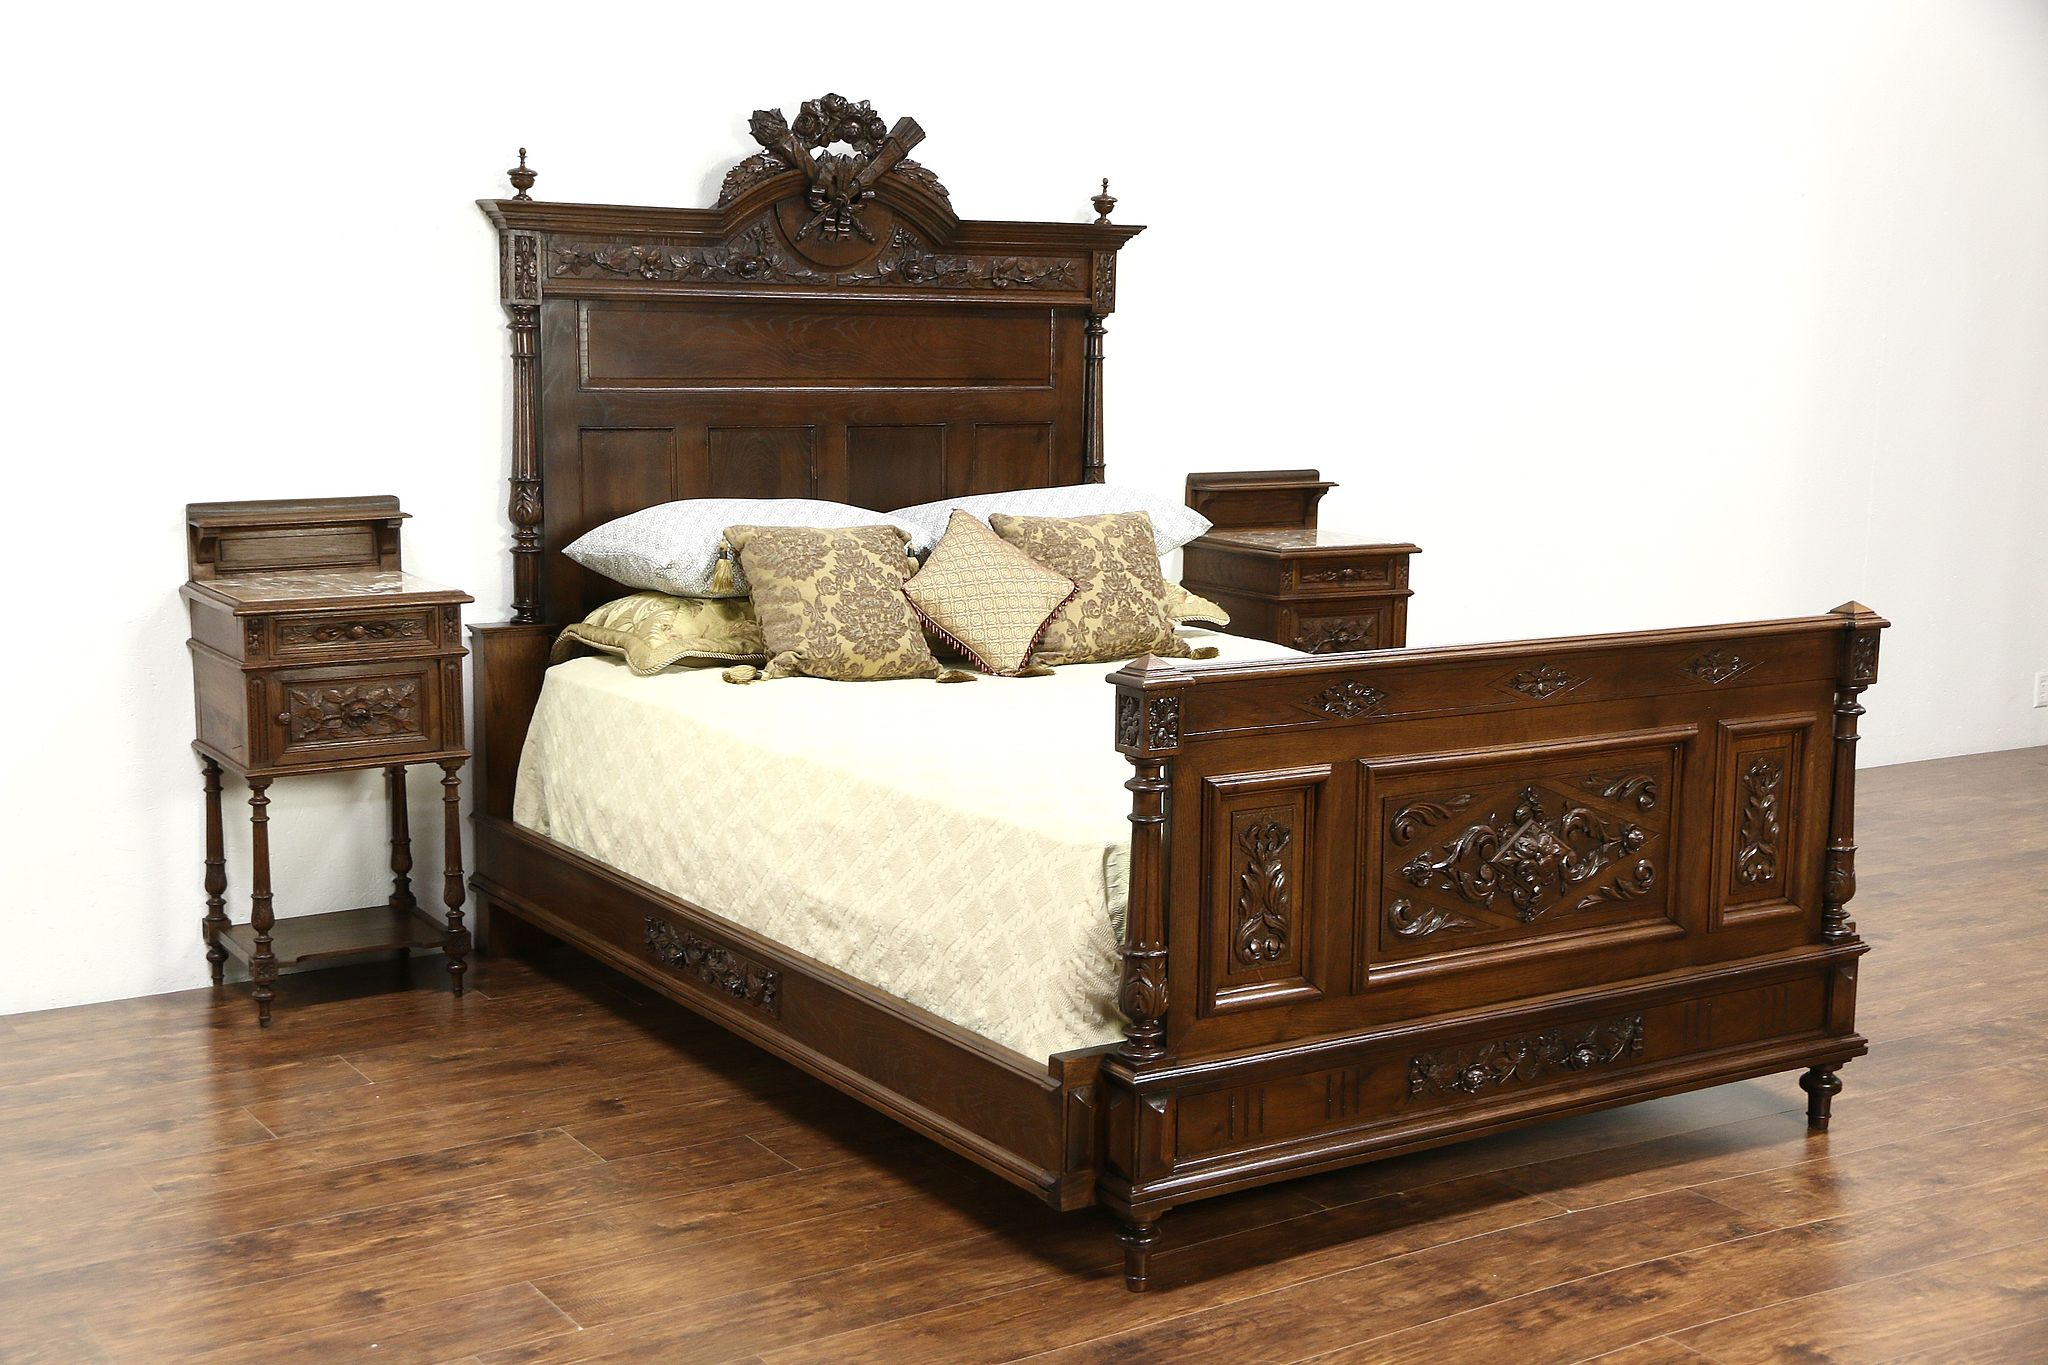 French Louis Xvi Antique 1890 Carved Bedroom Set Queen Size Bed 2 Nightstands